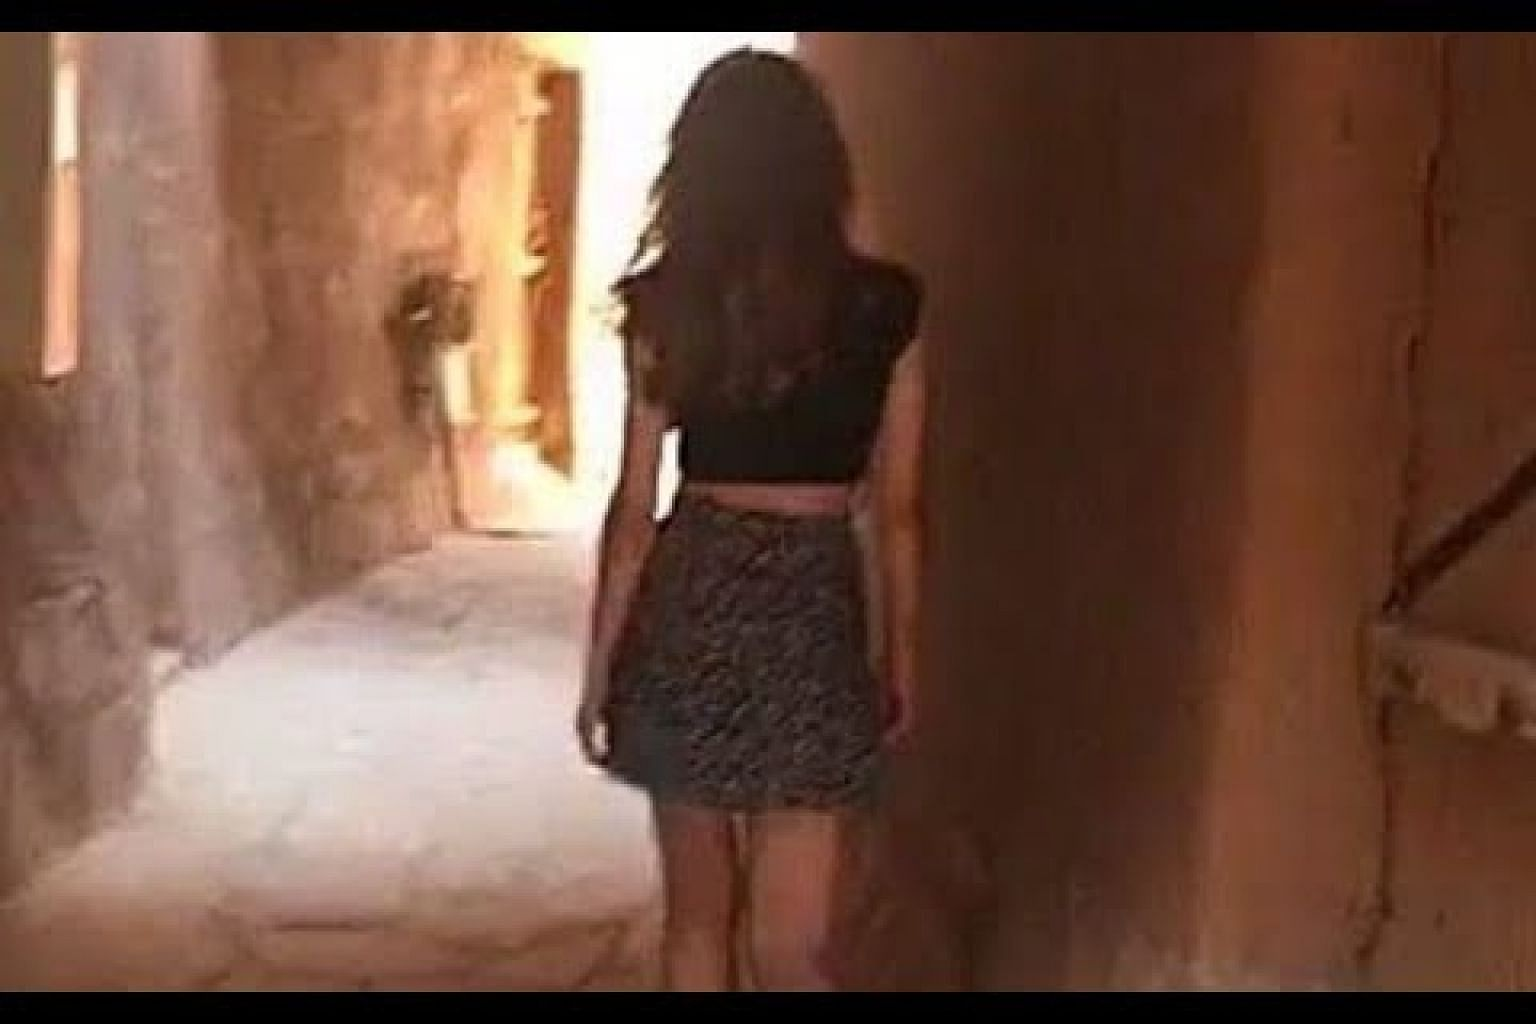 Video of Saudi Arabia woman in miniskirt.